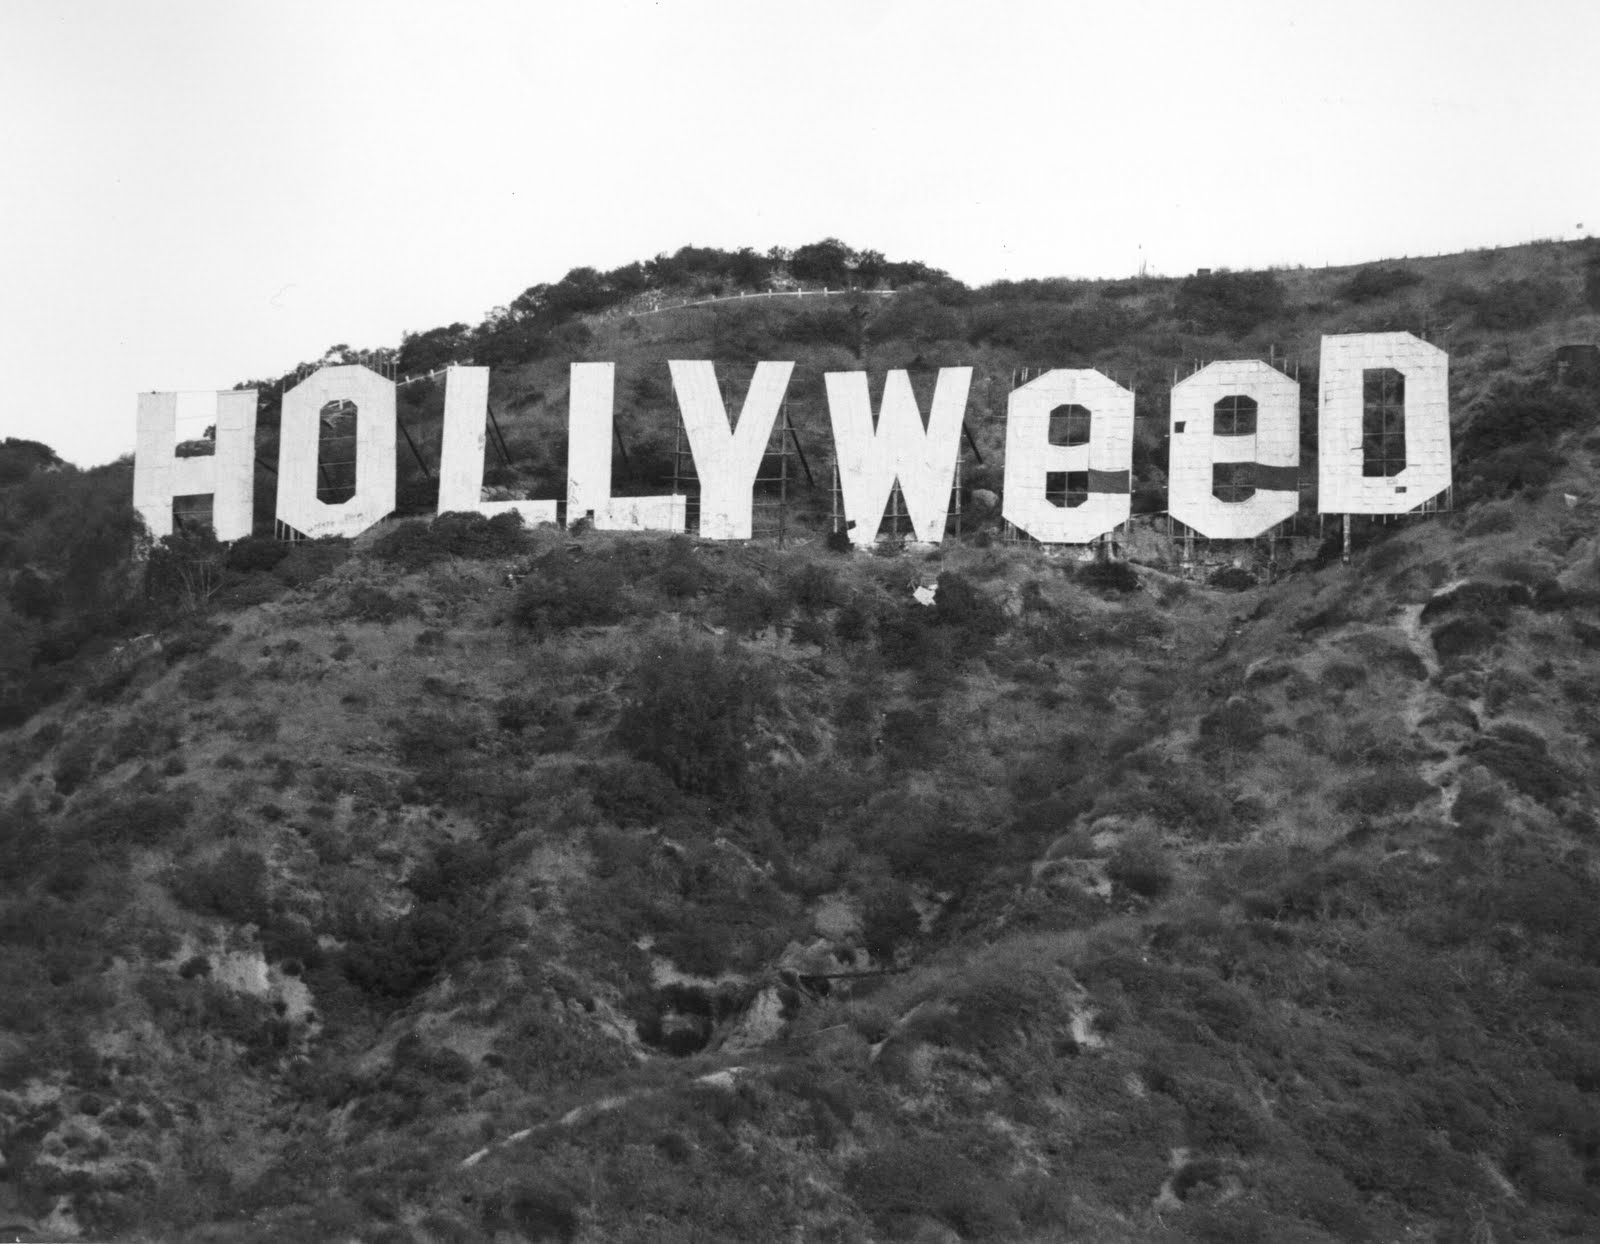 On New Years Day 1976 A Man Changed The Hollywood Sign To Hollyweed Celebrate Decriminalization Of Marijuana